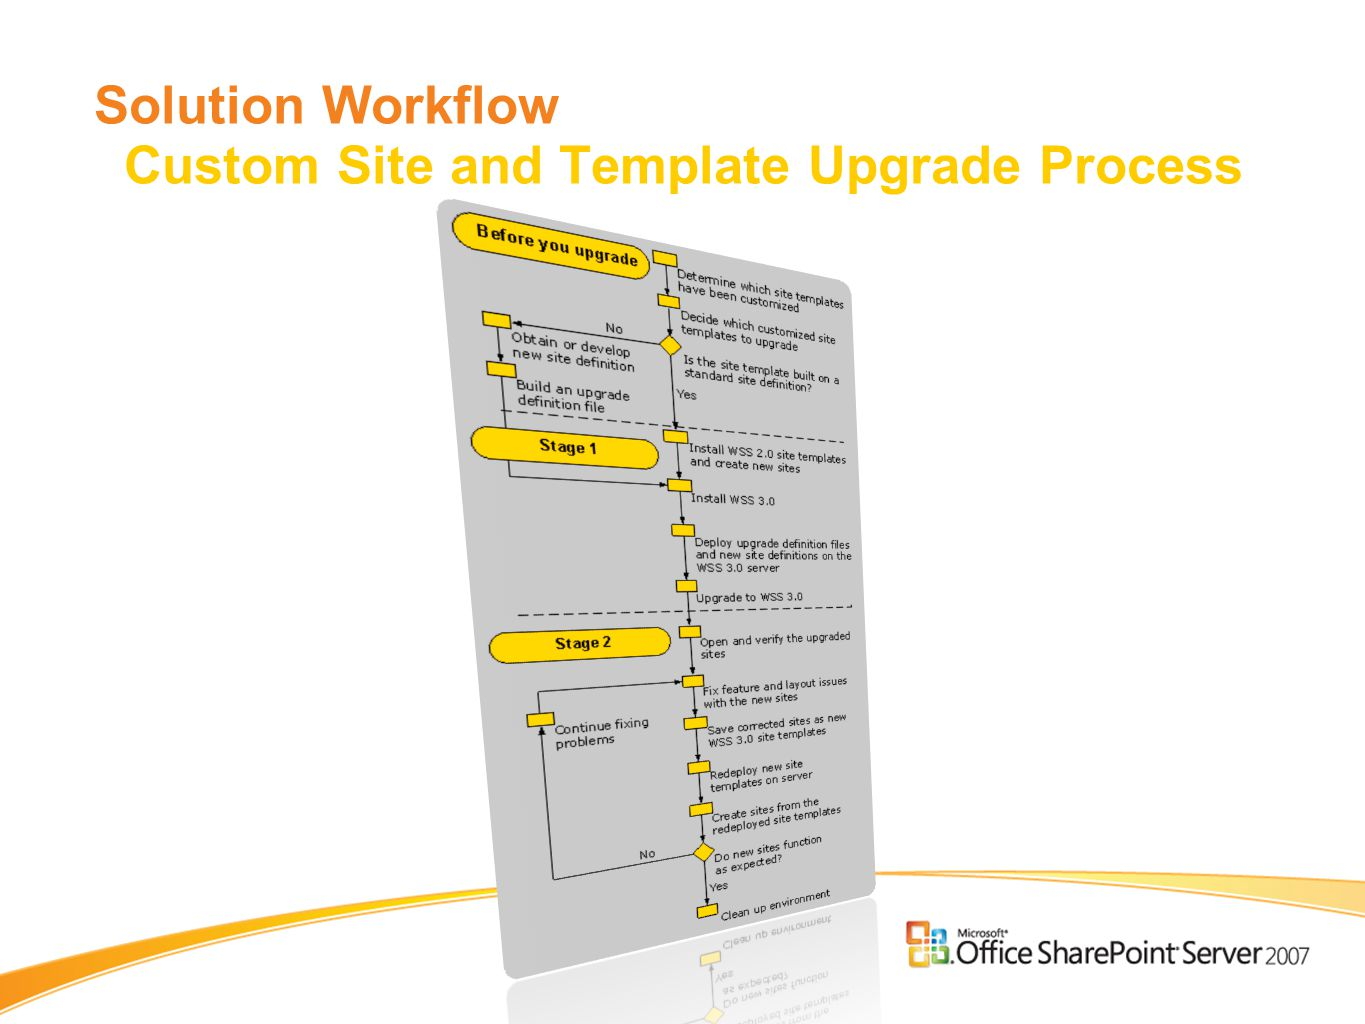 Solution Workflow Custom Site and Template Upgrade Process